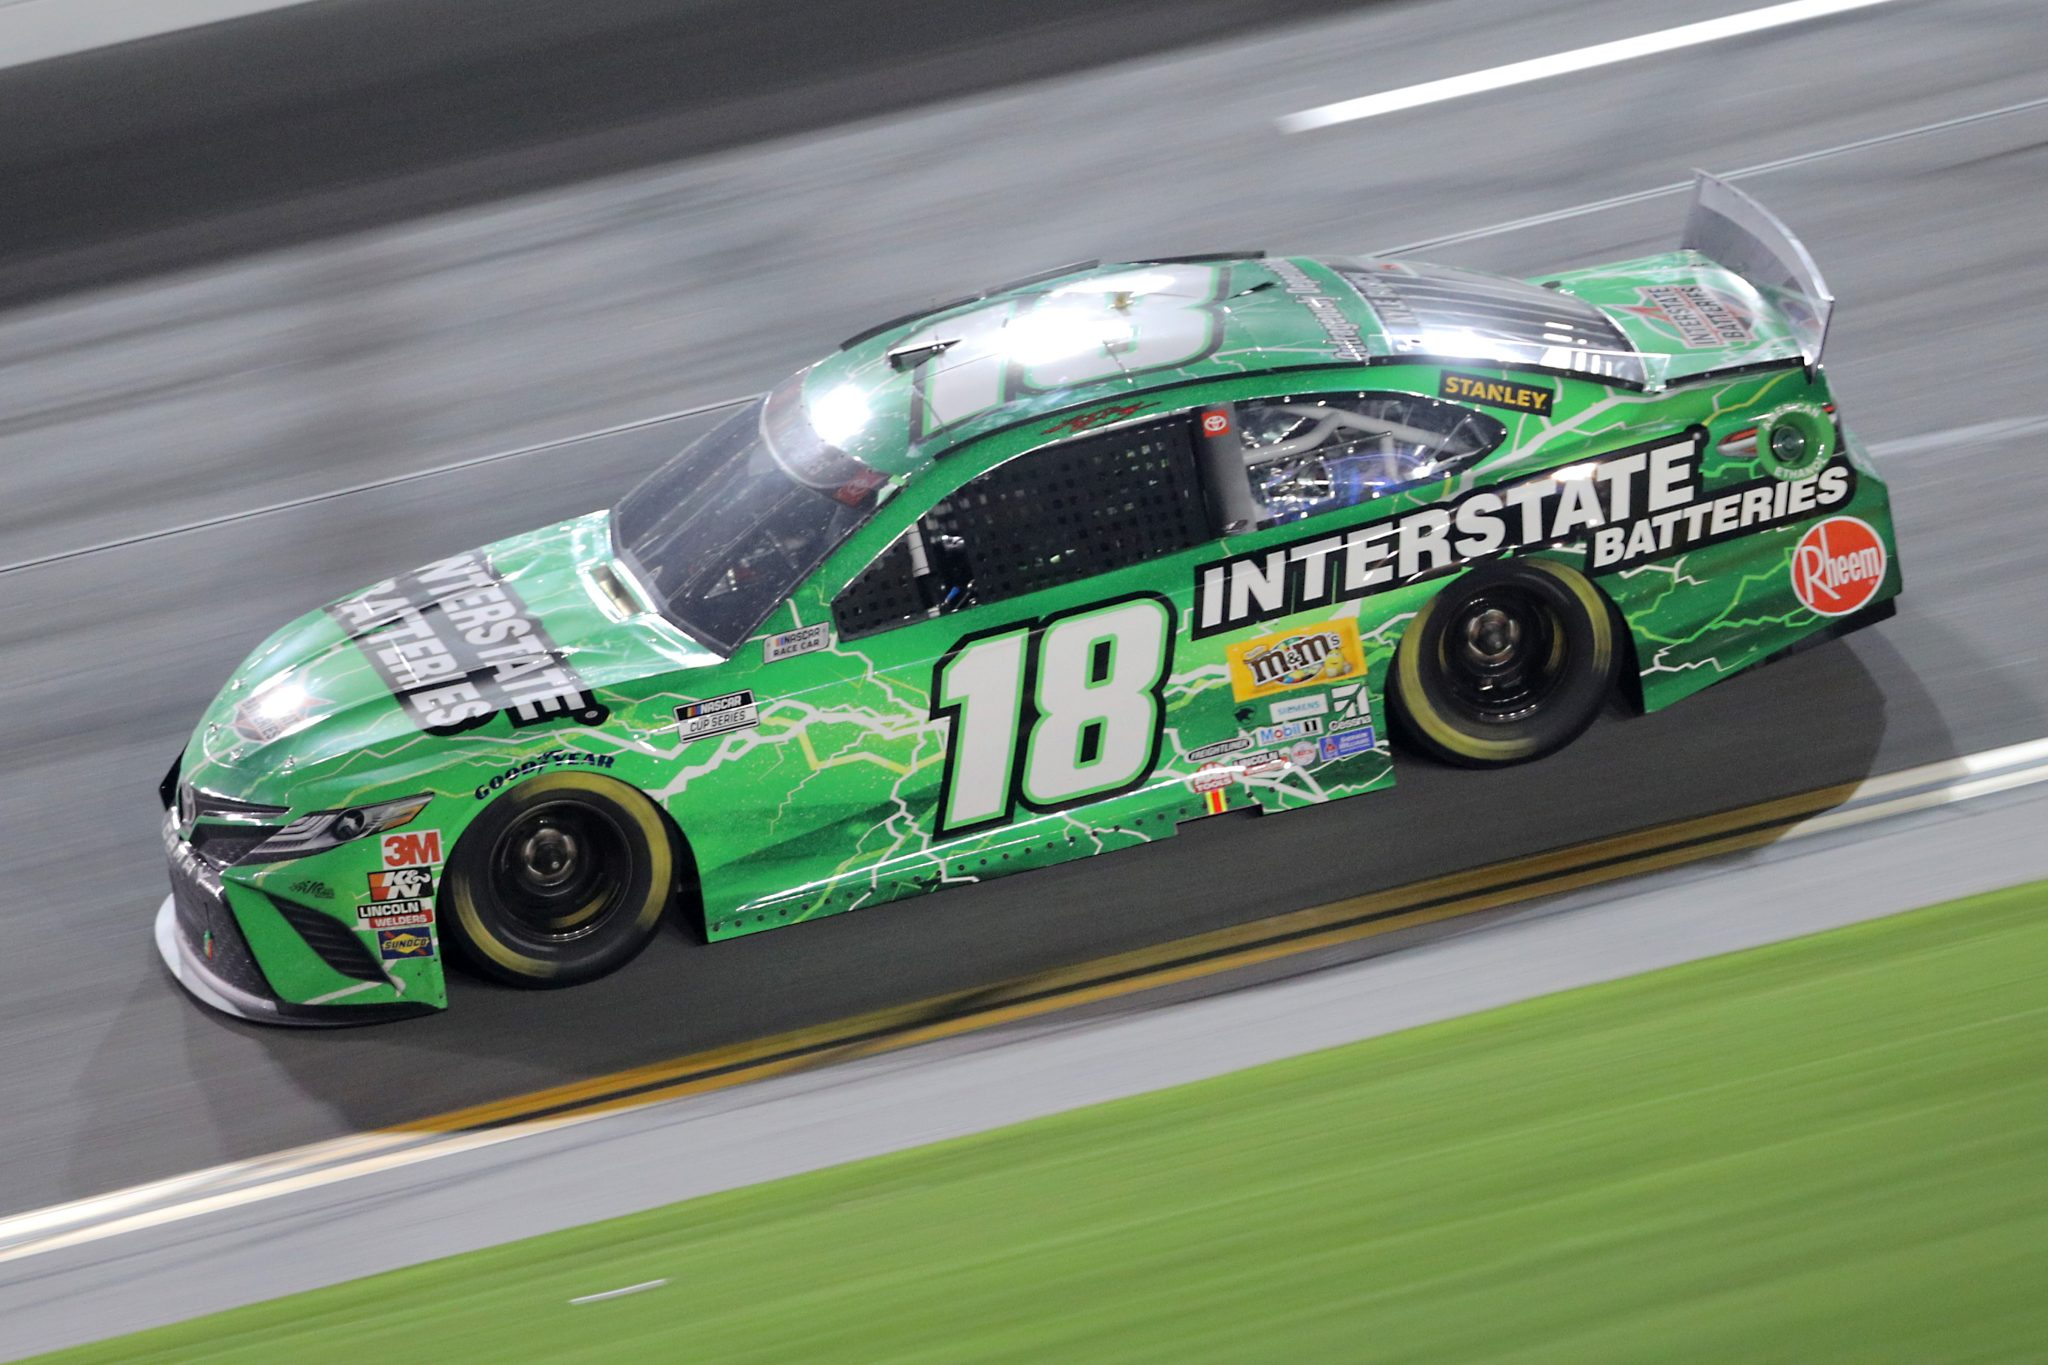 DAYTONA BEACH, FLORIDA - AUGUST 29: Kyle Busch, driver of the #18 Interstate Batteries Toyota, races during the NASCAR Cup Series Coke Zero Sugar 400 at Daytona International Speedway on August 29, 2020 in Daytona Beach, Florida. (Photo by Chris Graythen/Getty Images) | Getty Images